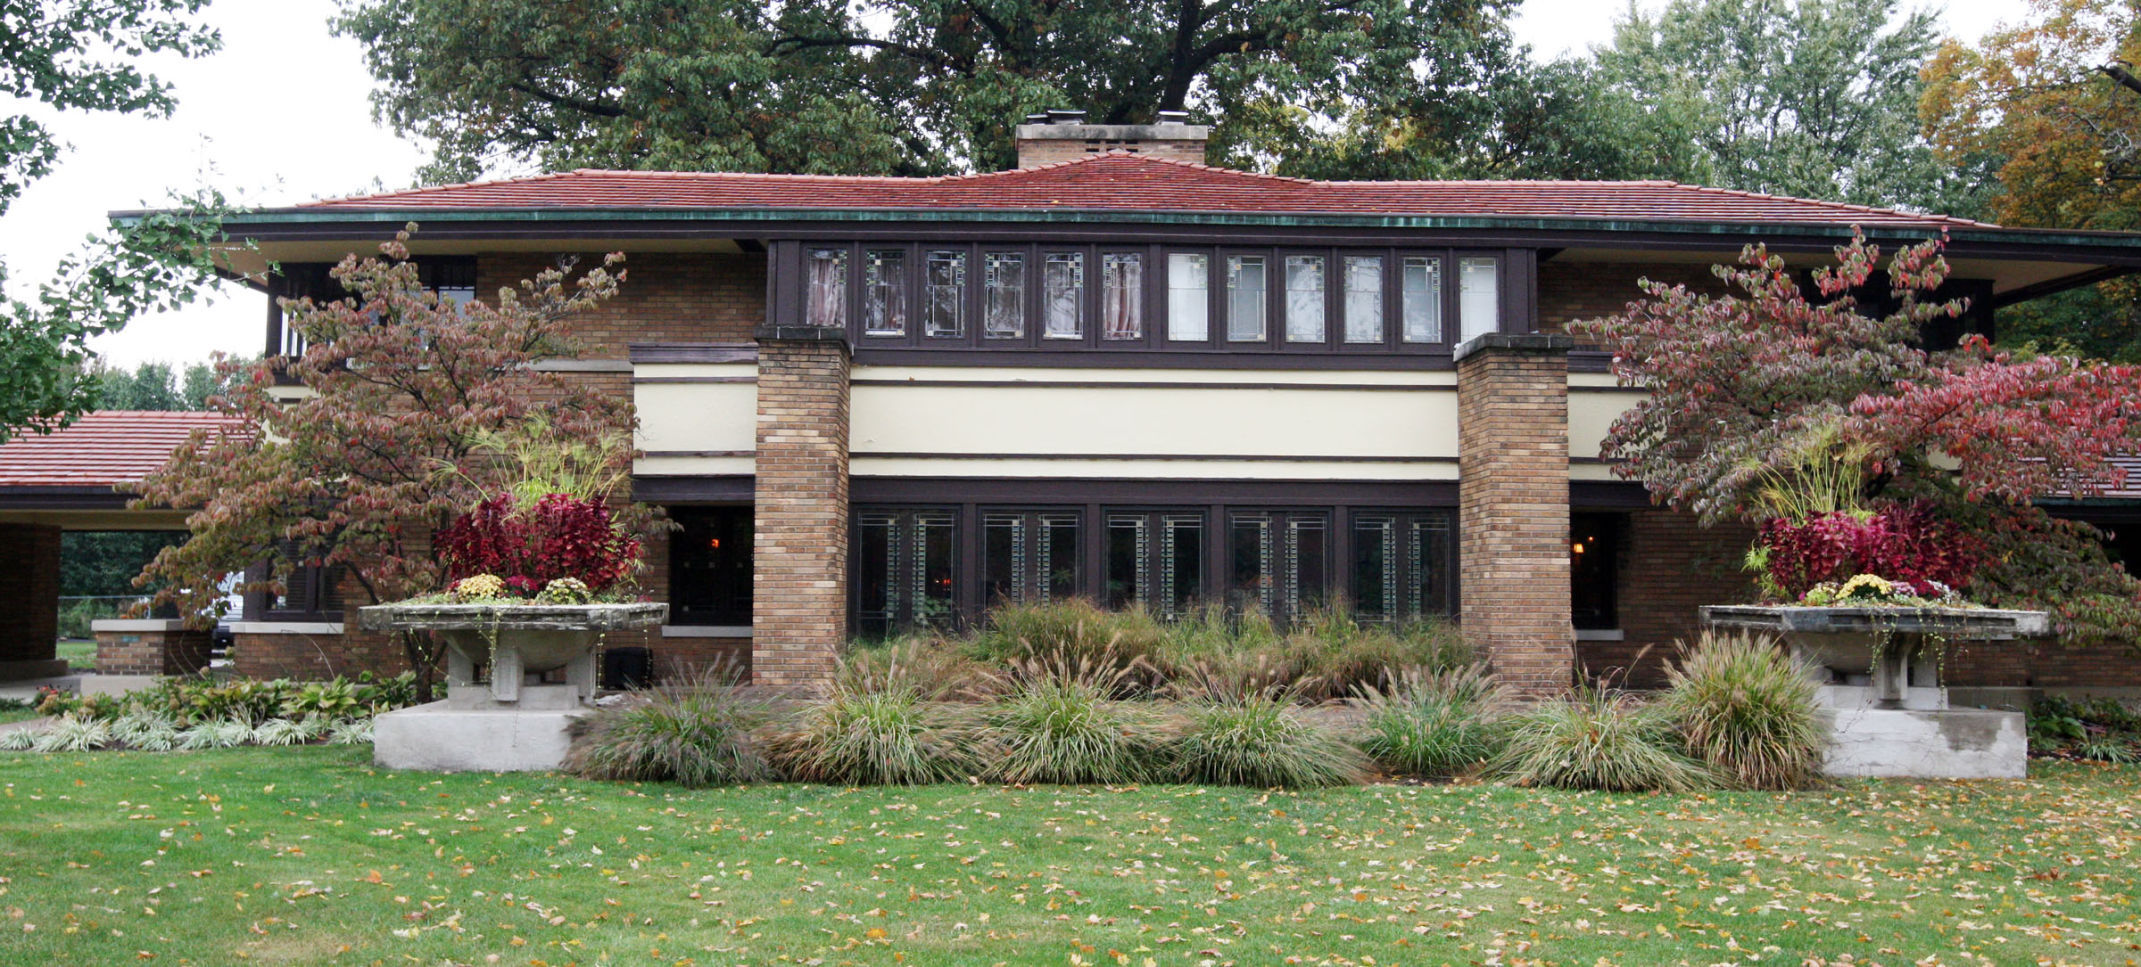 725 000 decatur home designed by frank lloyd wright goes on the rh herald review com